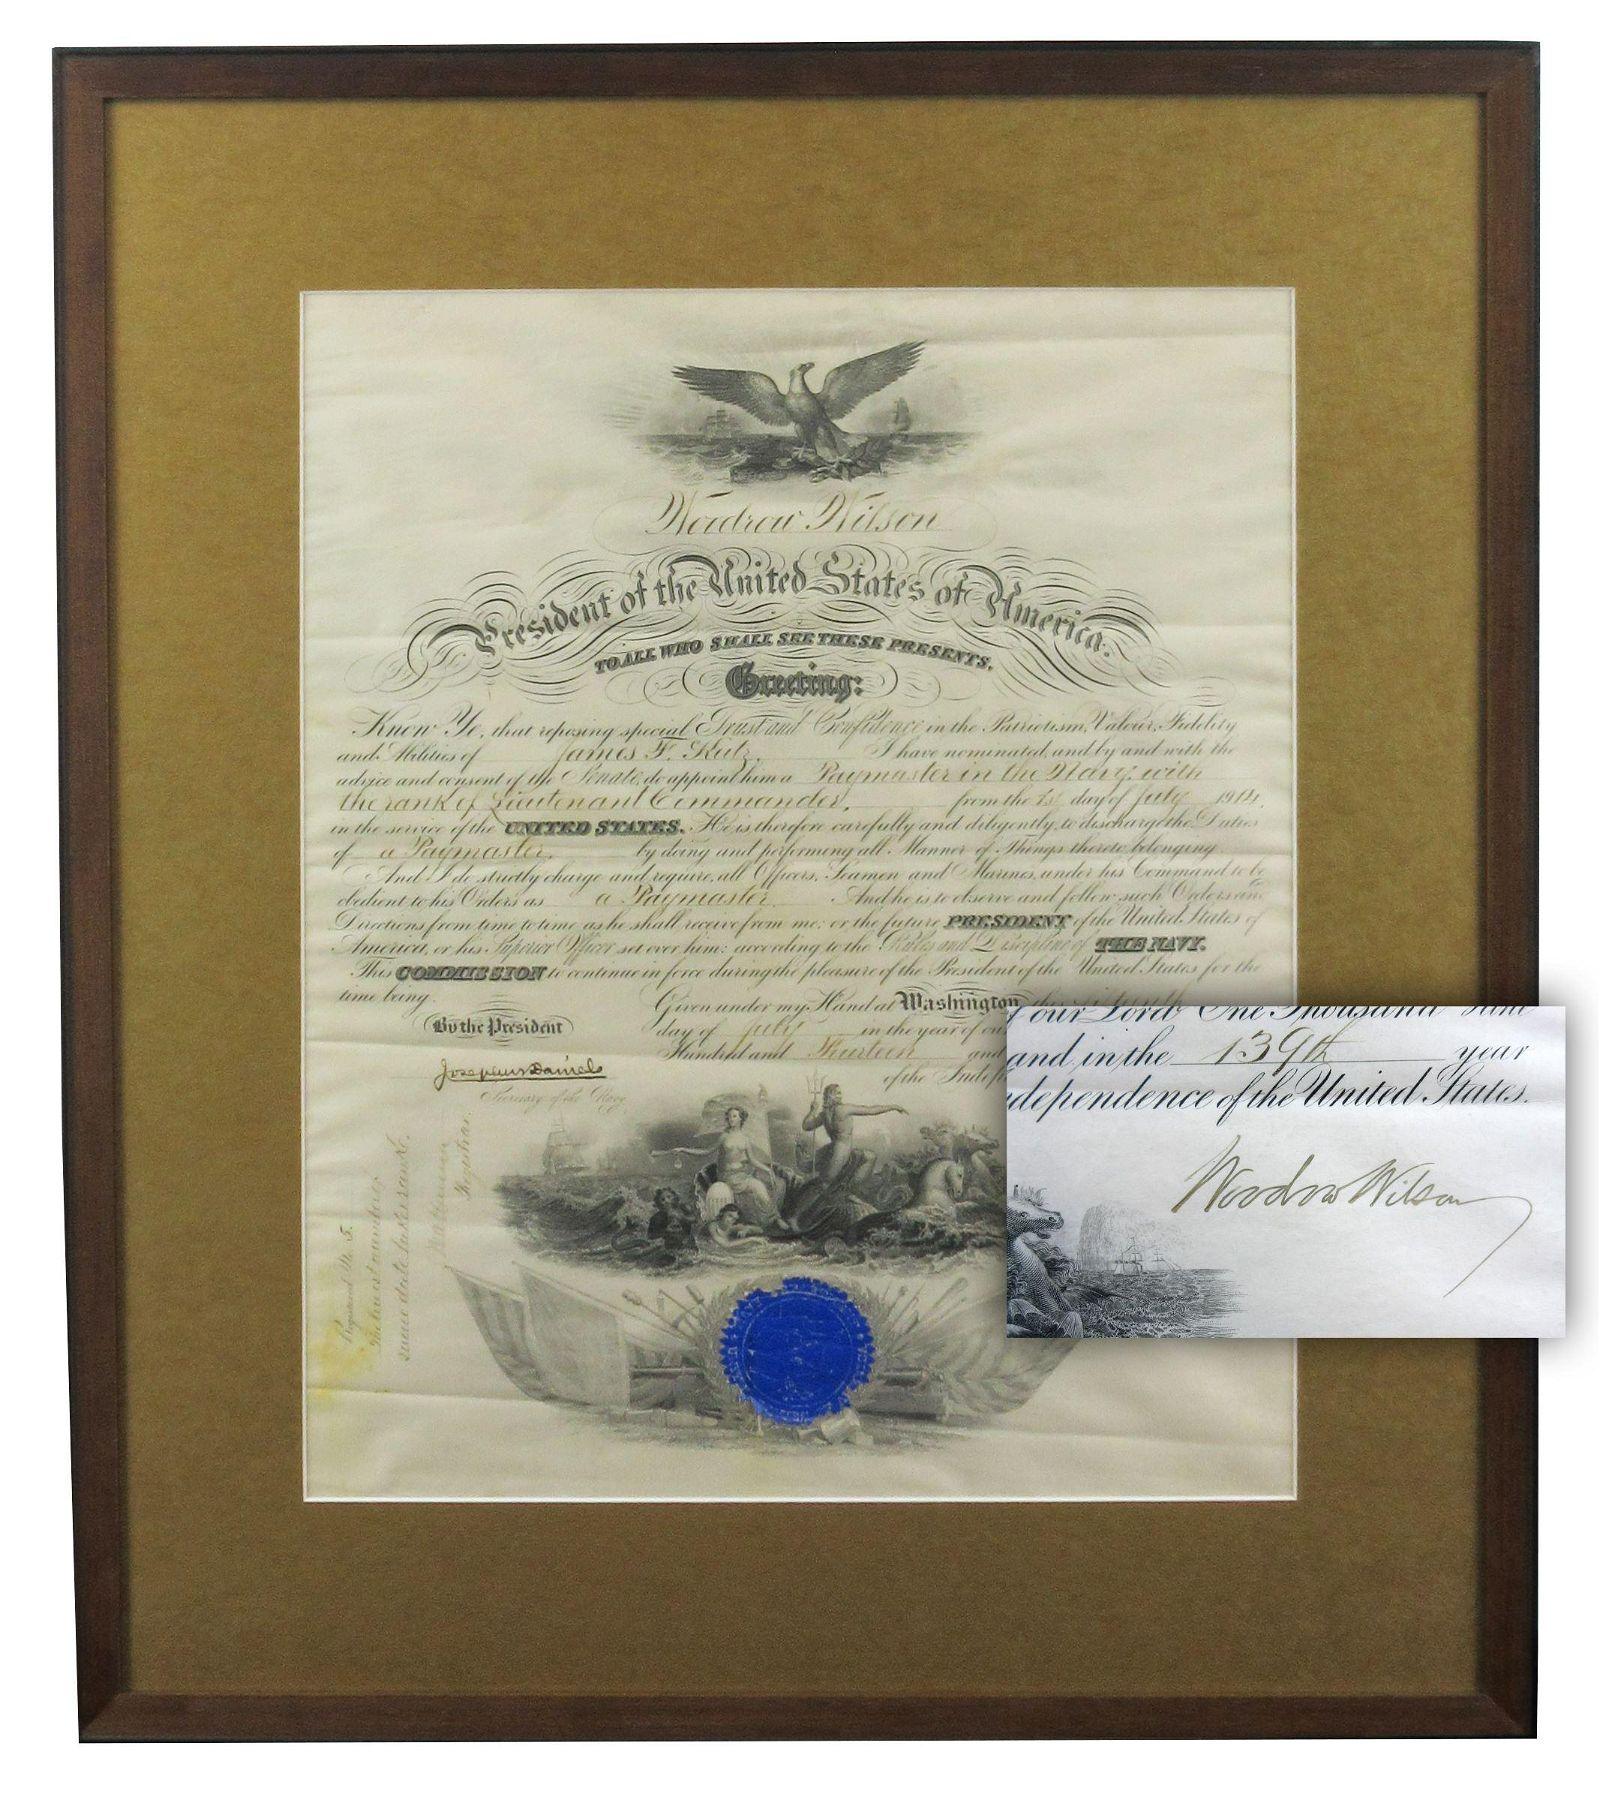 Woodrow Wilson Signed Naval Commission Promoting Son of